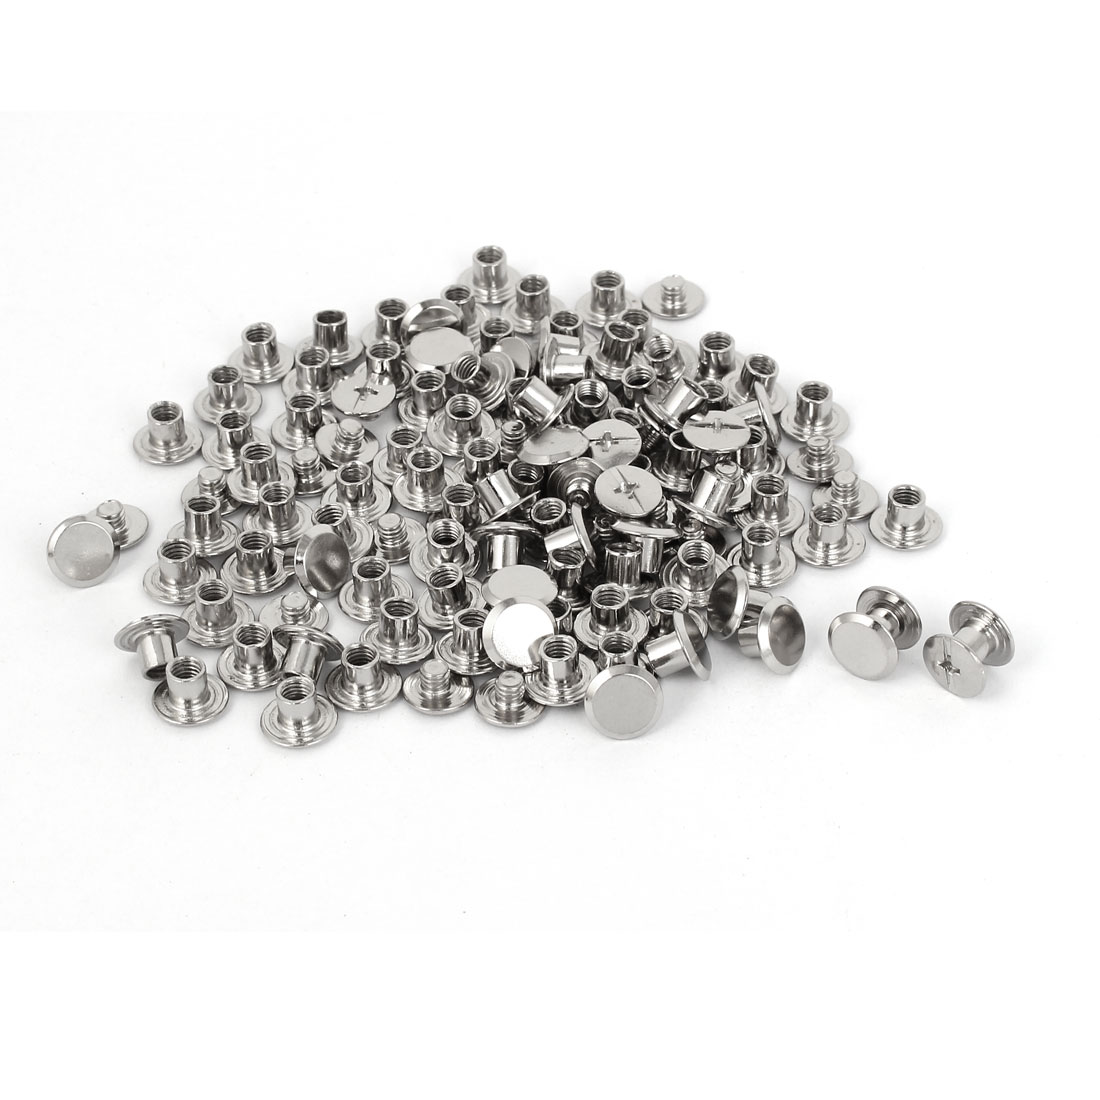 Uxcell M5x5mm Leather Albums Metal Nail Rivets Chicago Screws Binding Post (100-pack)